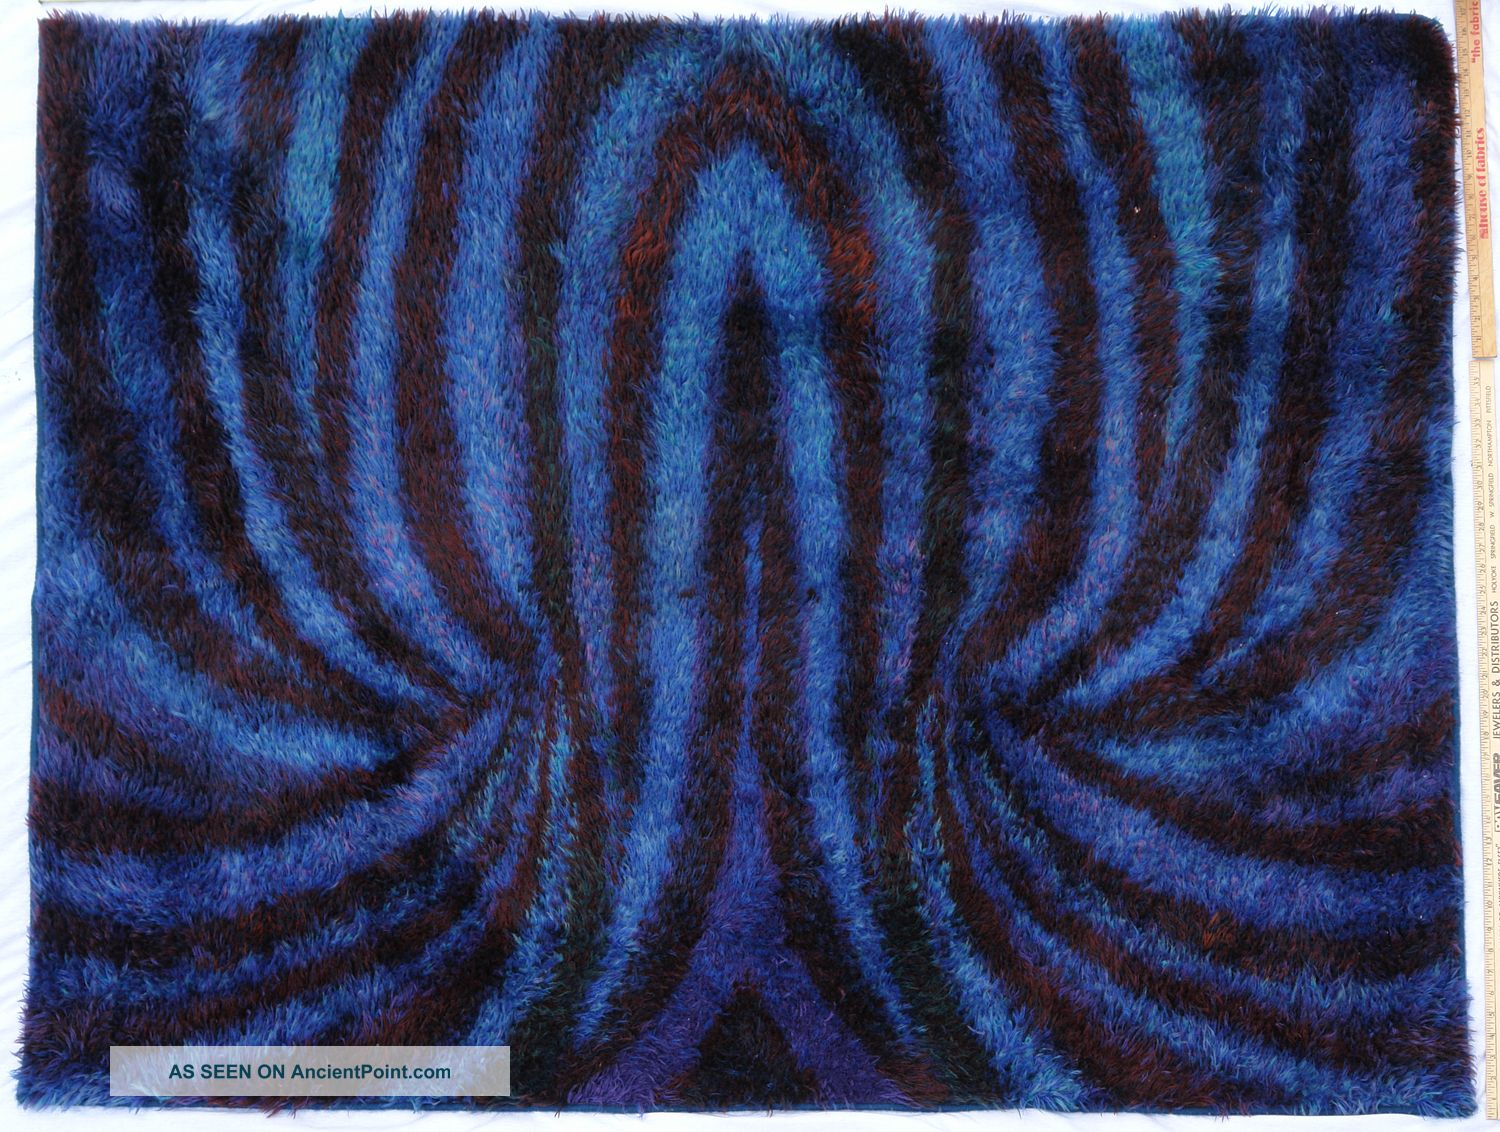 Danish Modern Rya Ege Shag Rug In Gorgeous Blue Vintage Op Art Pattern Medium (4x6-6x9) photo